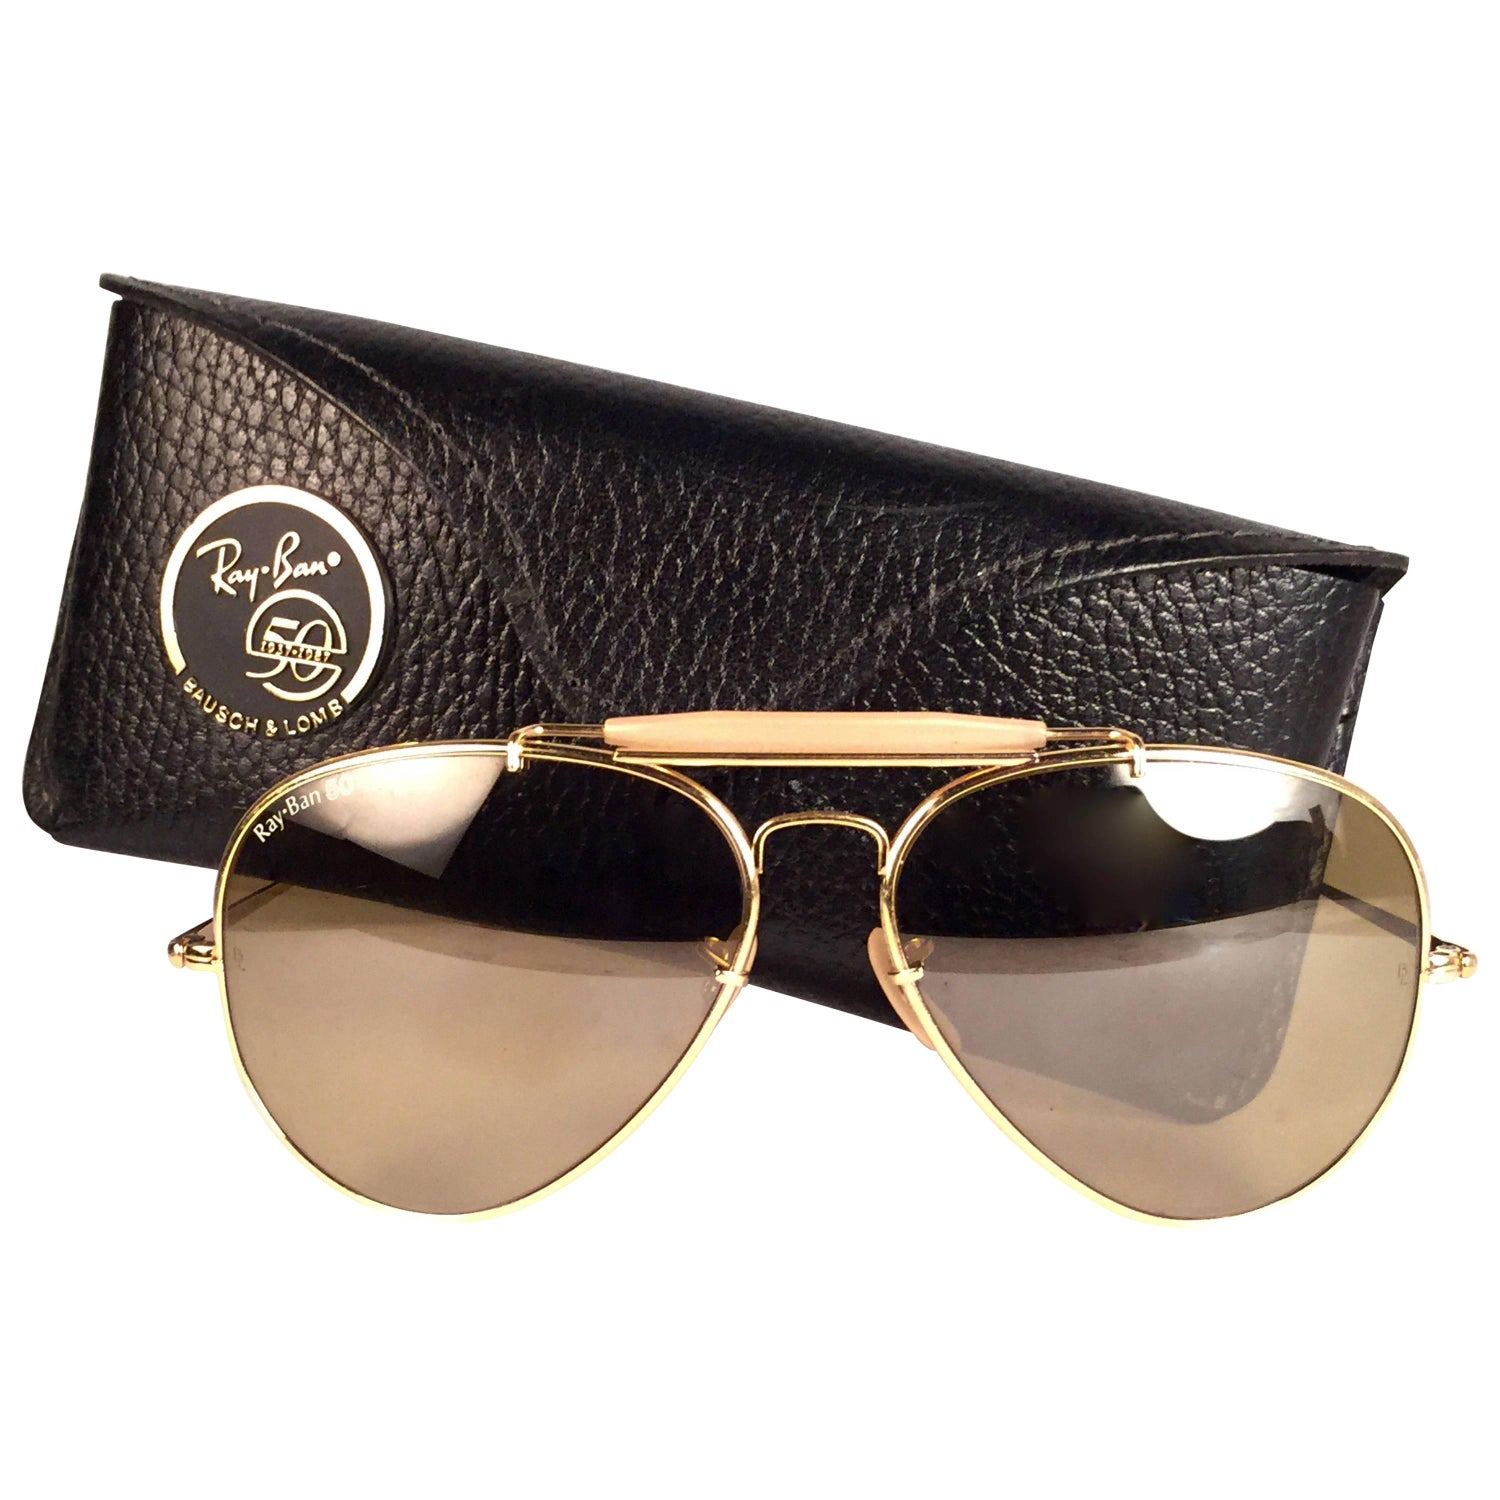 b1b0c489f89e Vintage Ray Ban The General 50 Collectors Item George Michael Faith Tour  62Mm US